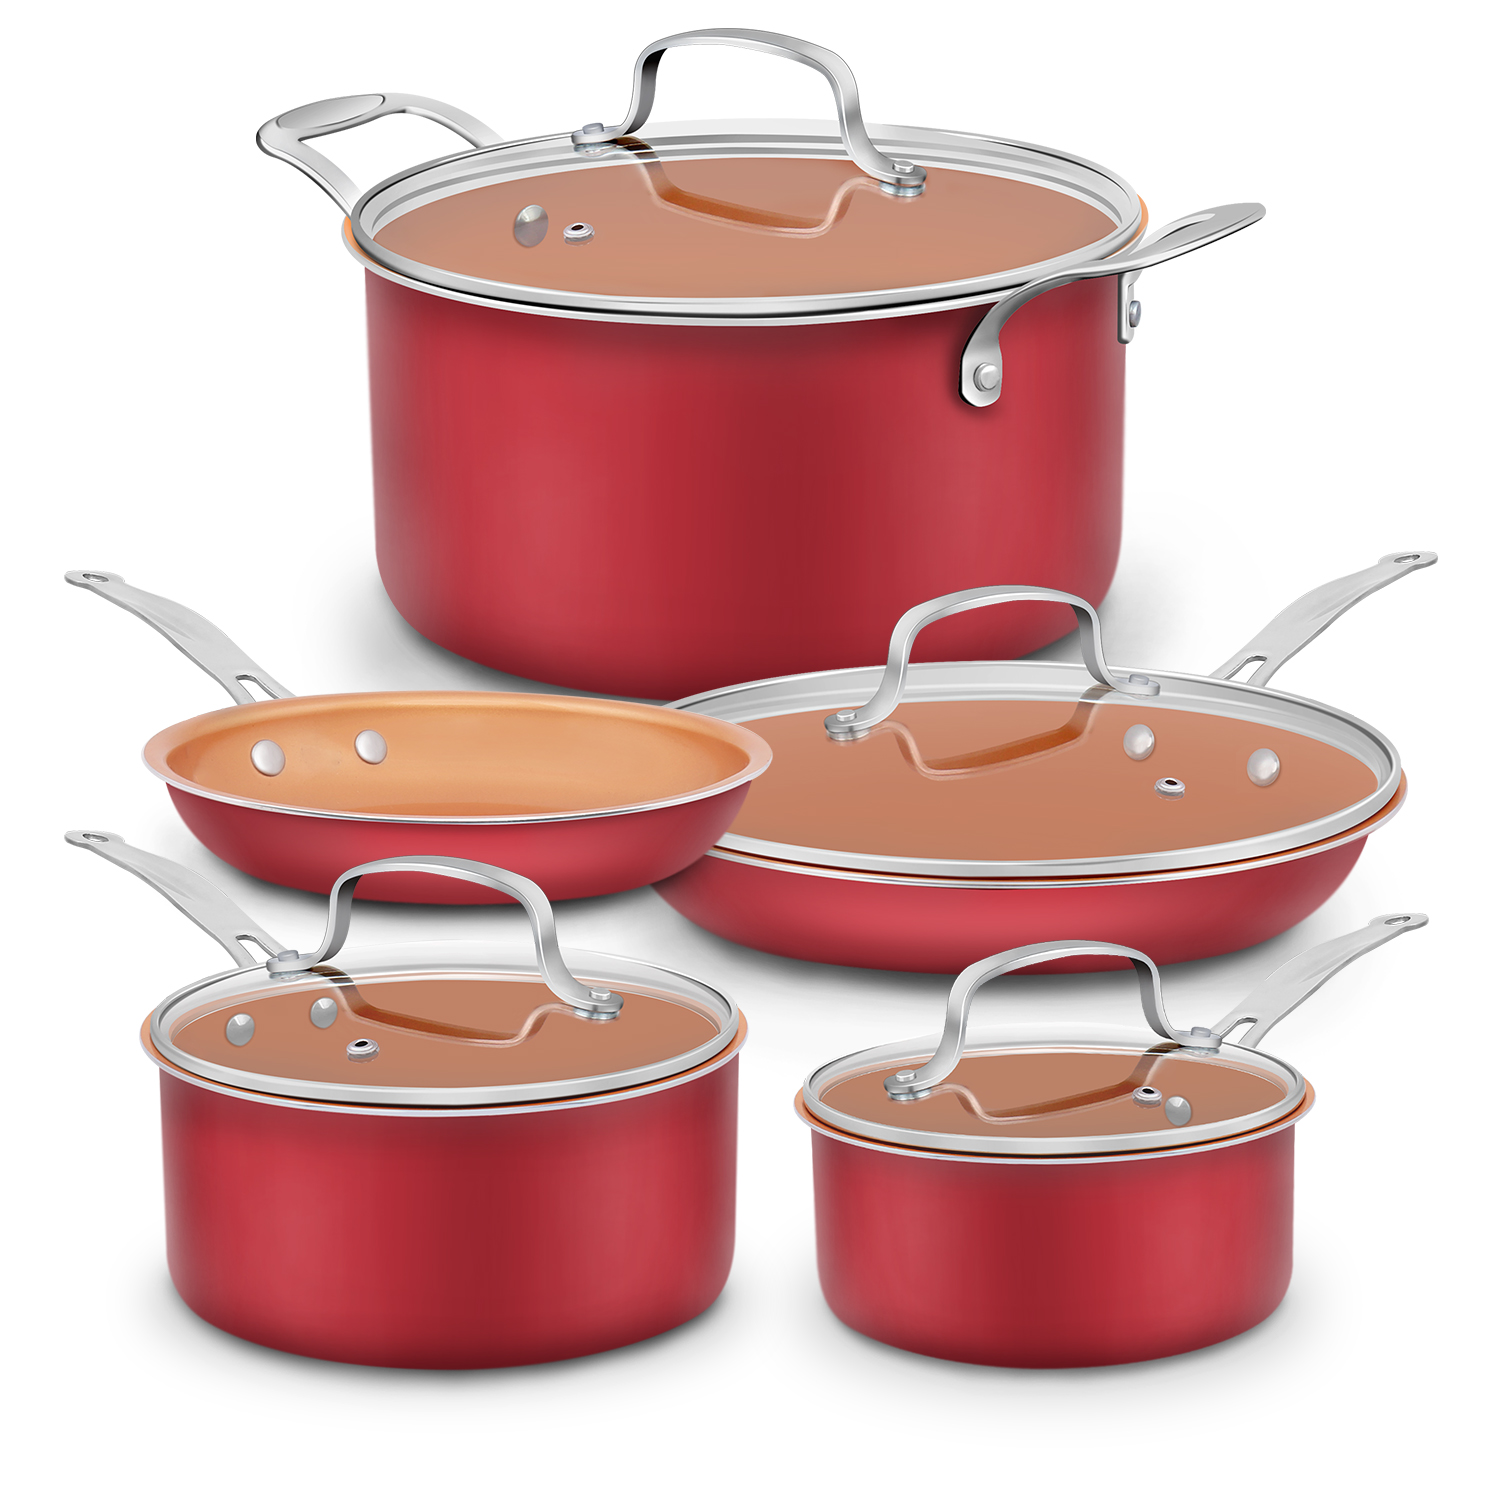 9 Piece Aluminum-Infused Copper Ceramic Non-Stick Cookware Set, Save $10 with Amazon Coupon